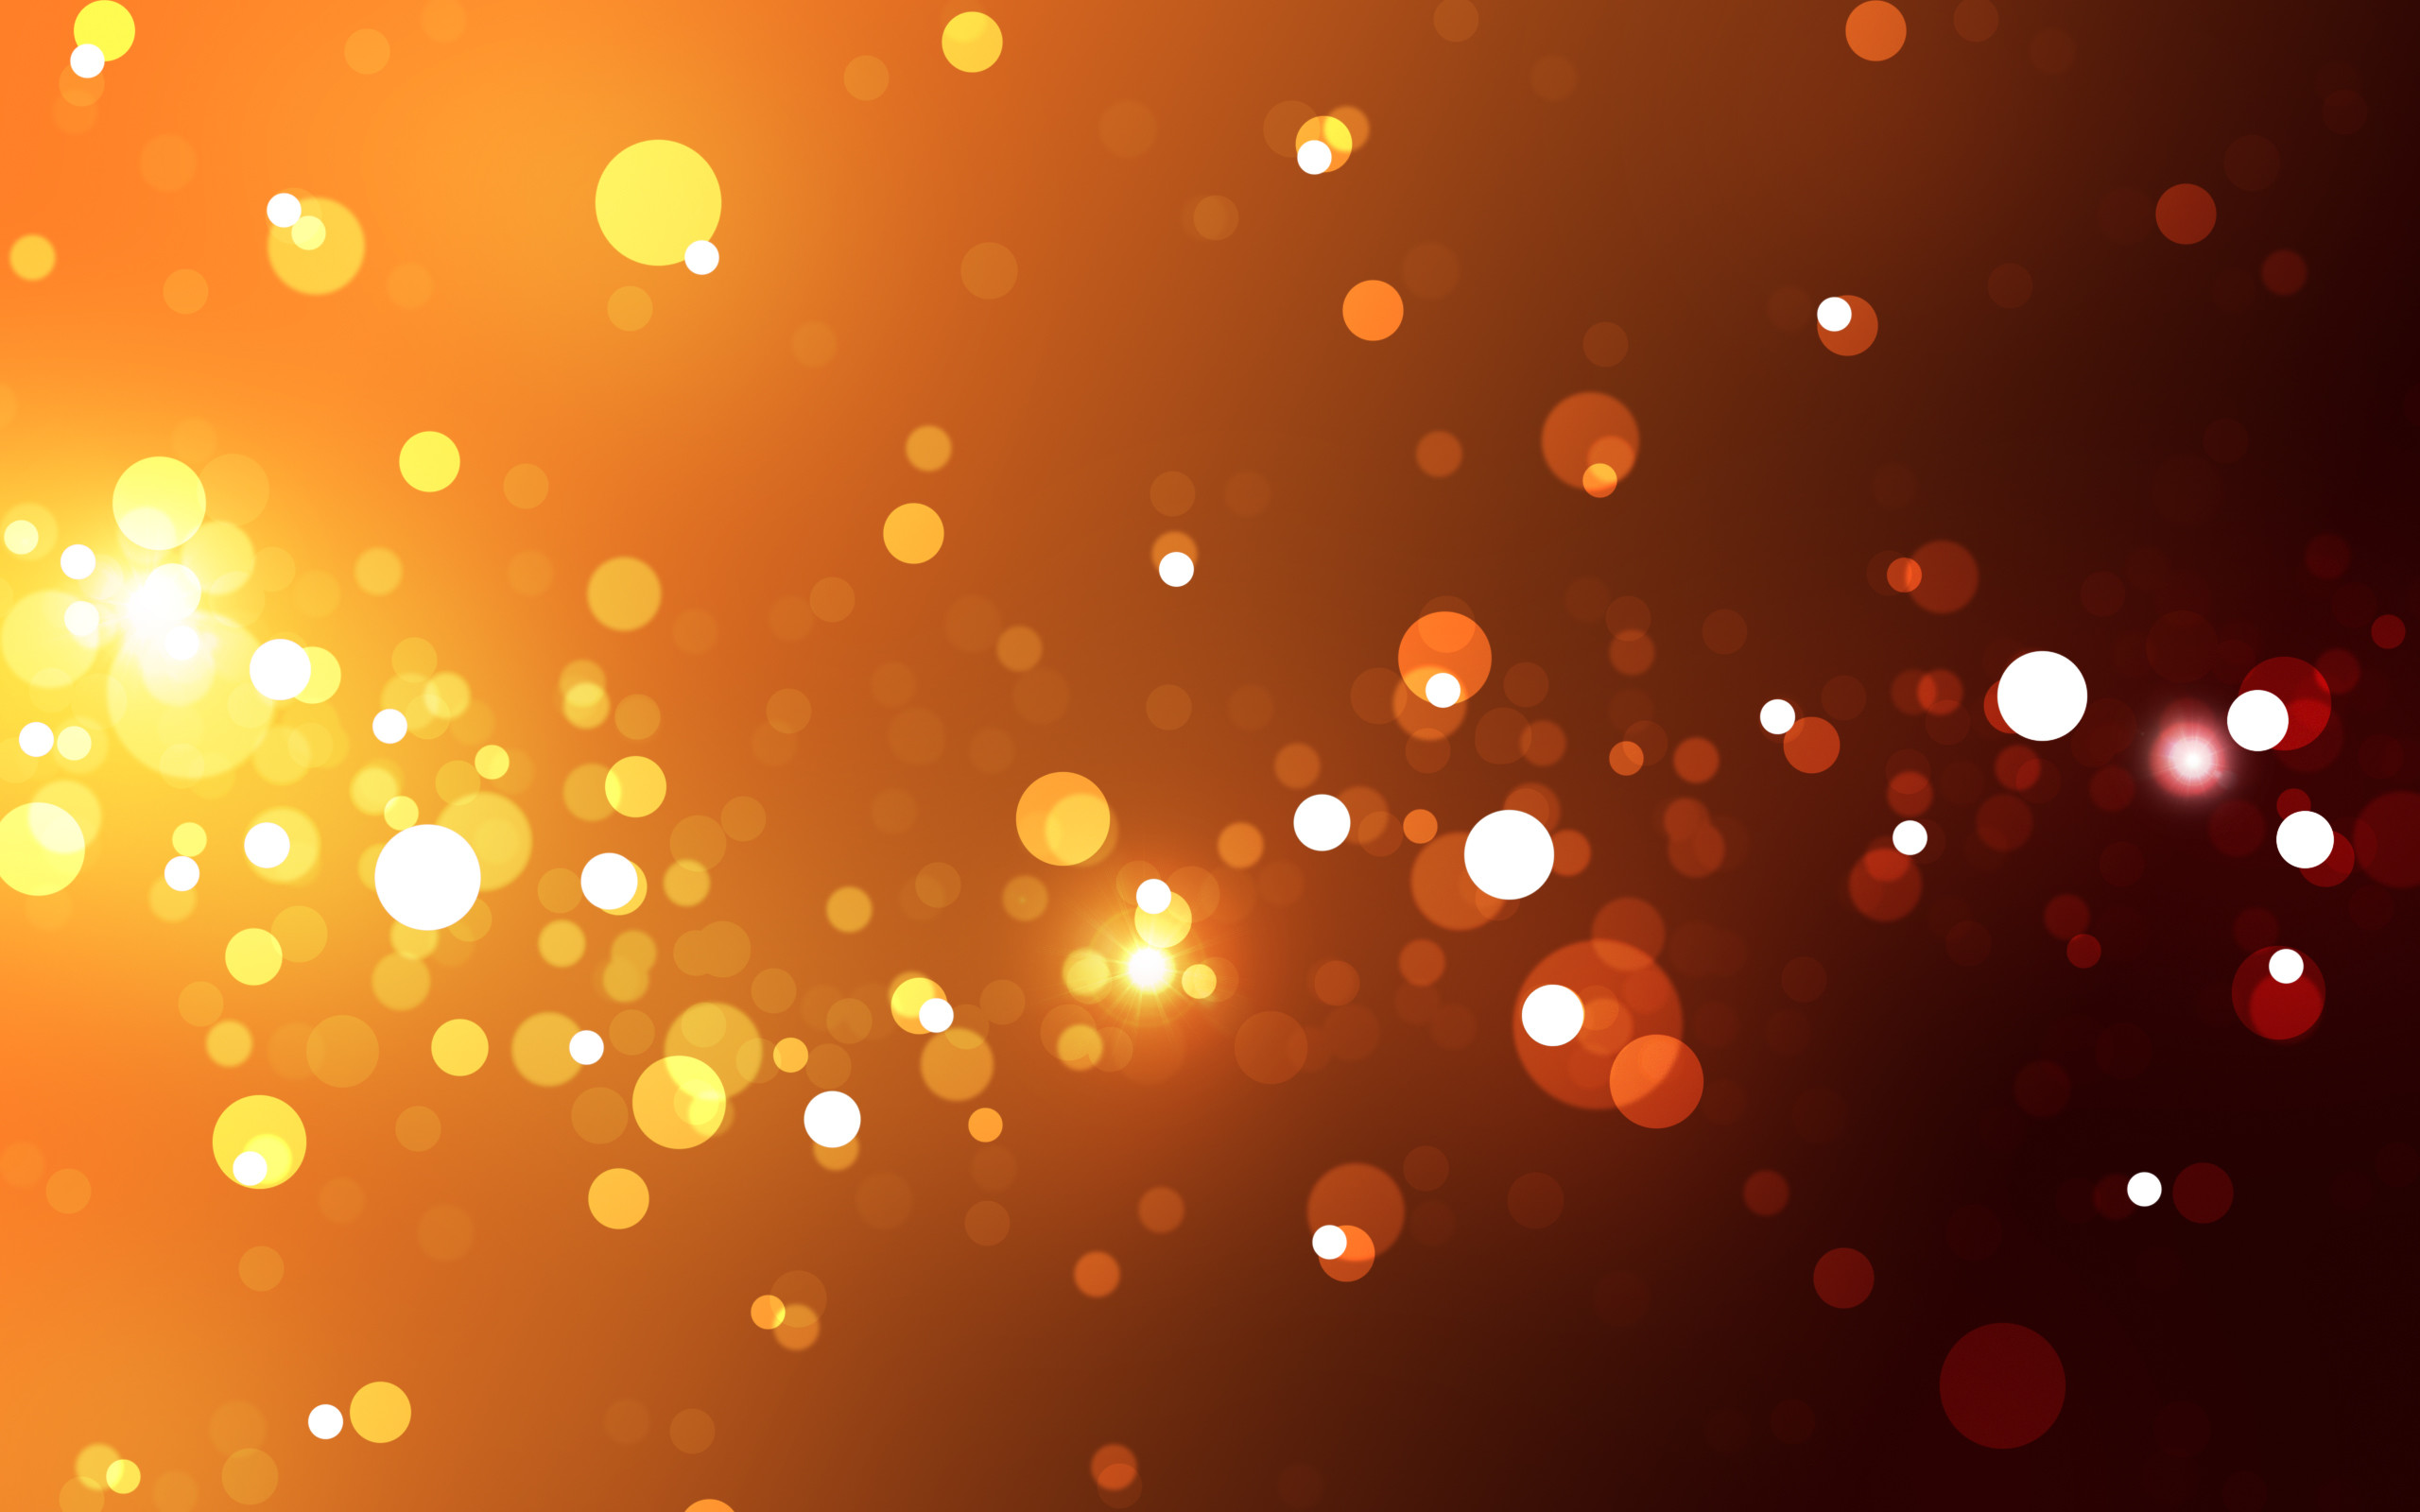 Tags: Light Orange Cool. Category: Abstract